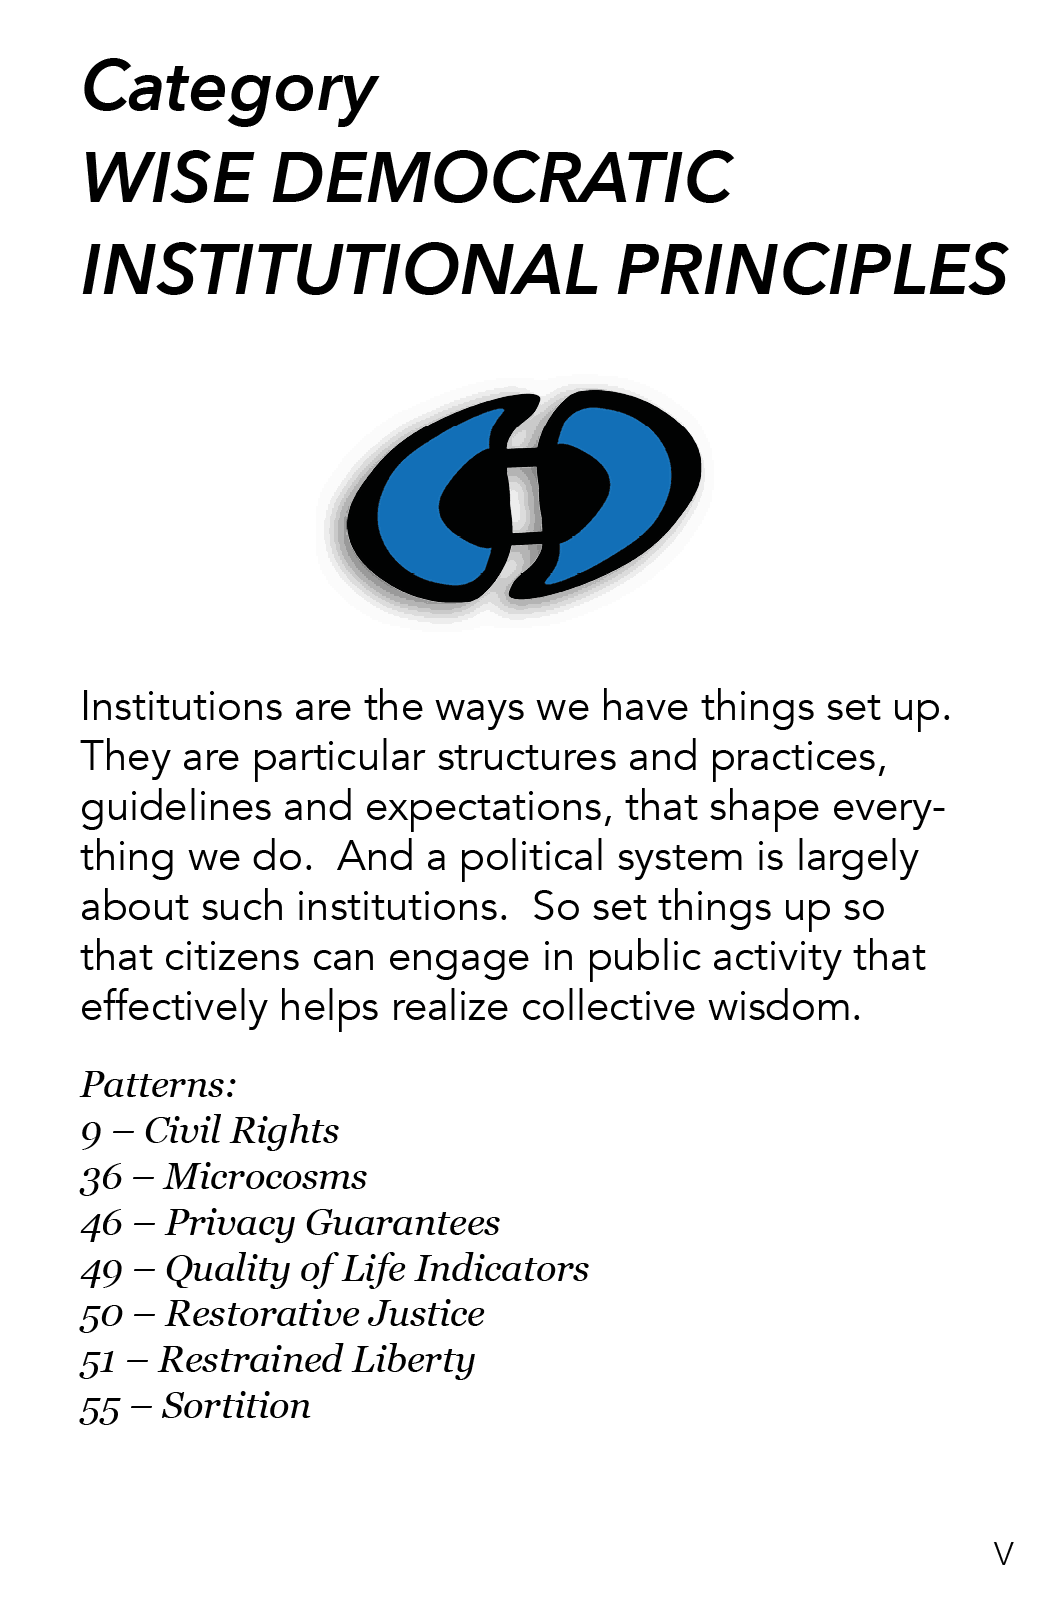 AA - 6 - Wise Democratic Institutional Principles